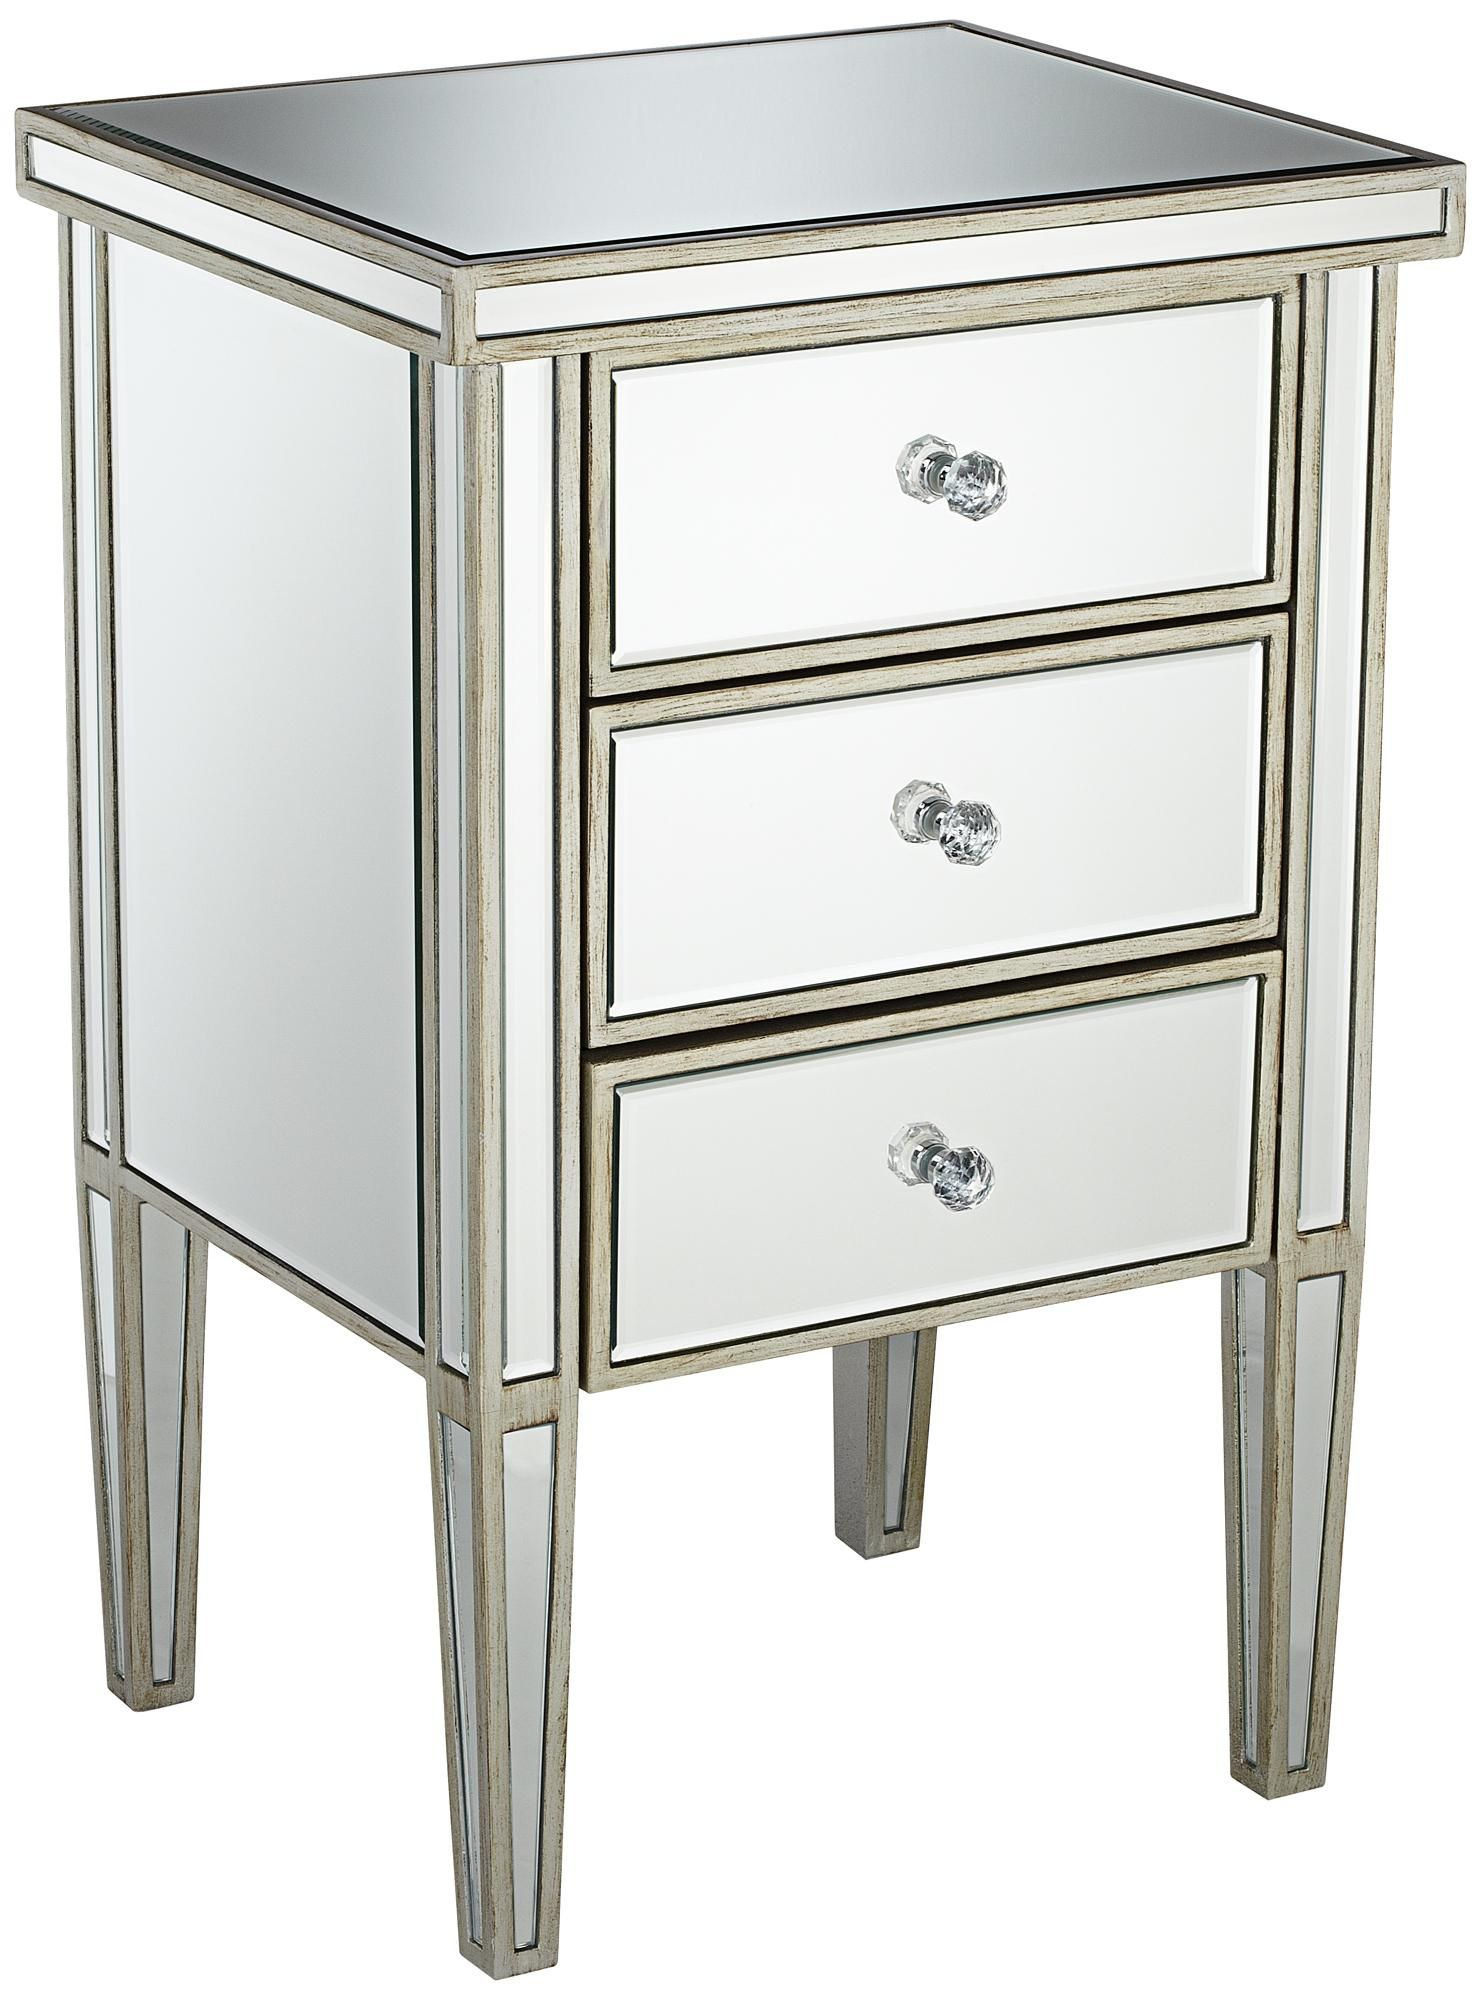 antique silver drawer mirrored nightstand   high   - antique silver drawer mirrored nightstand   high  wide